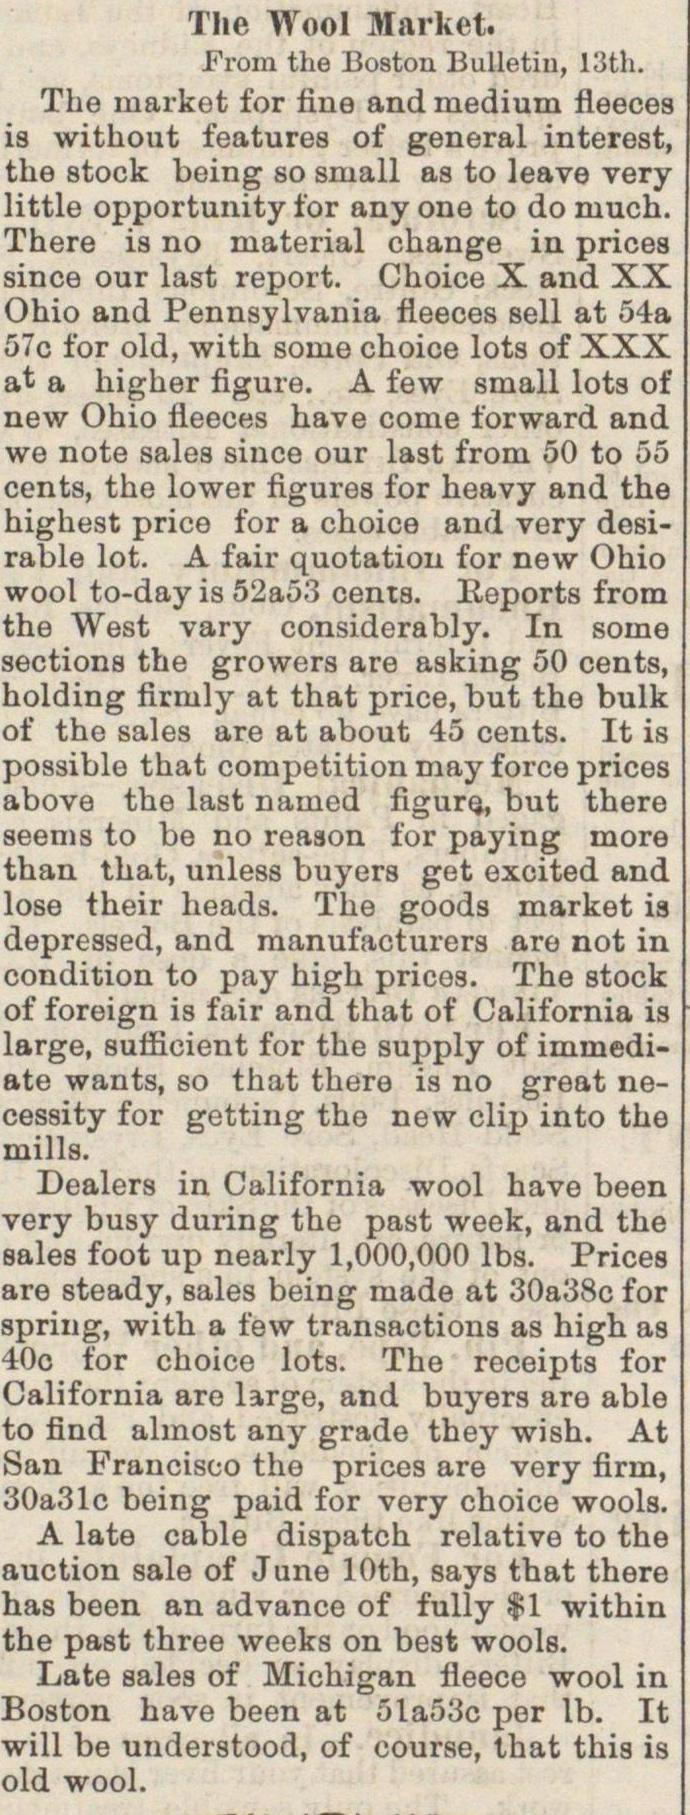 The Wool Market image